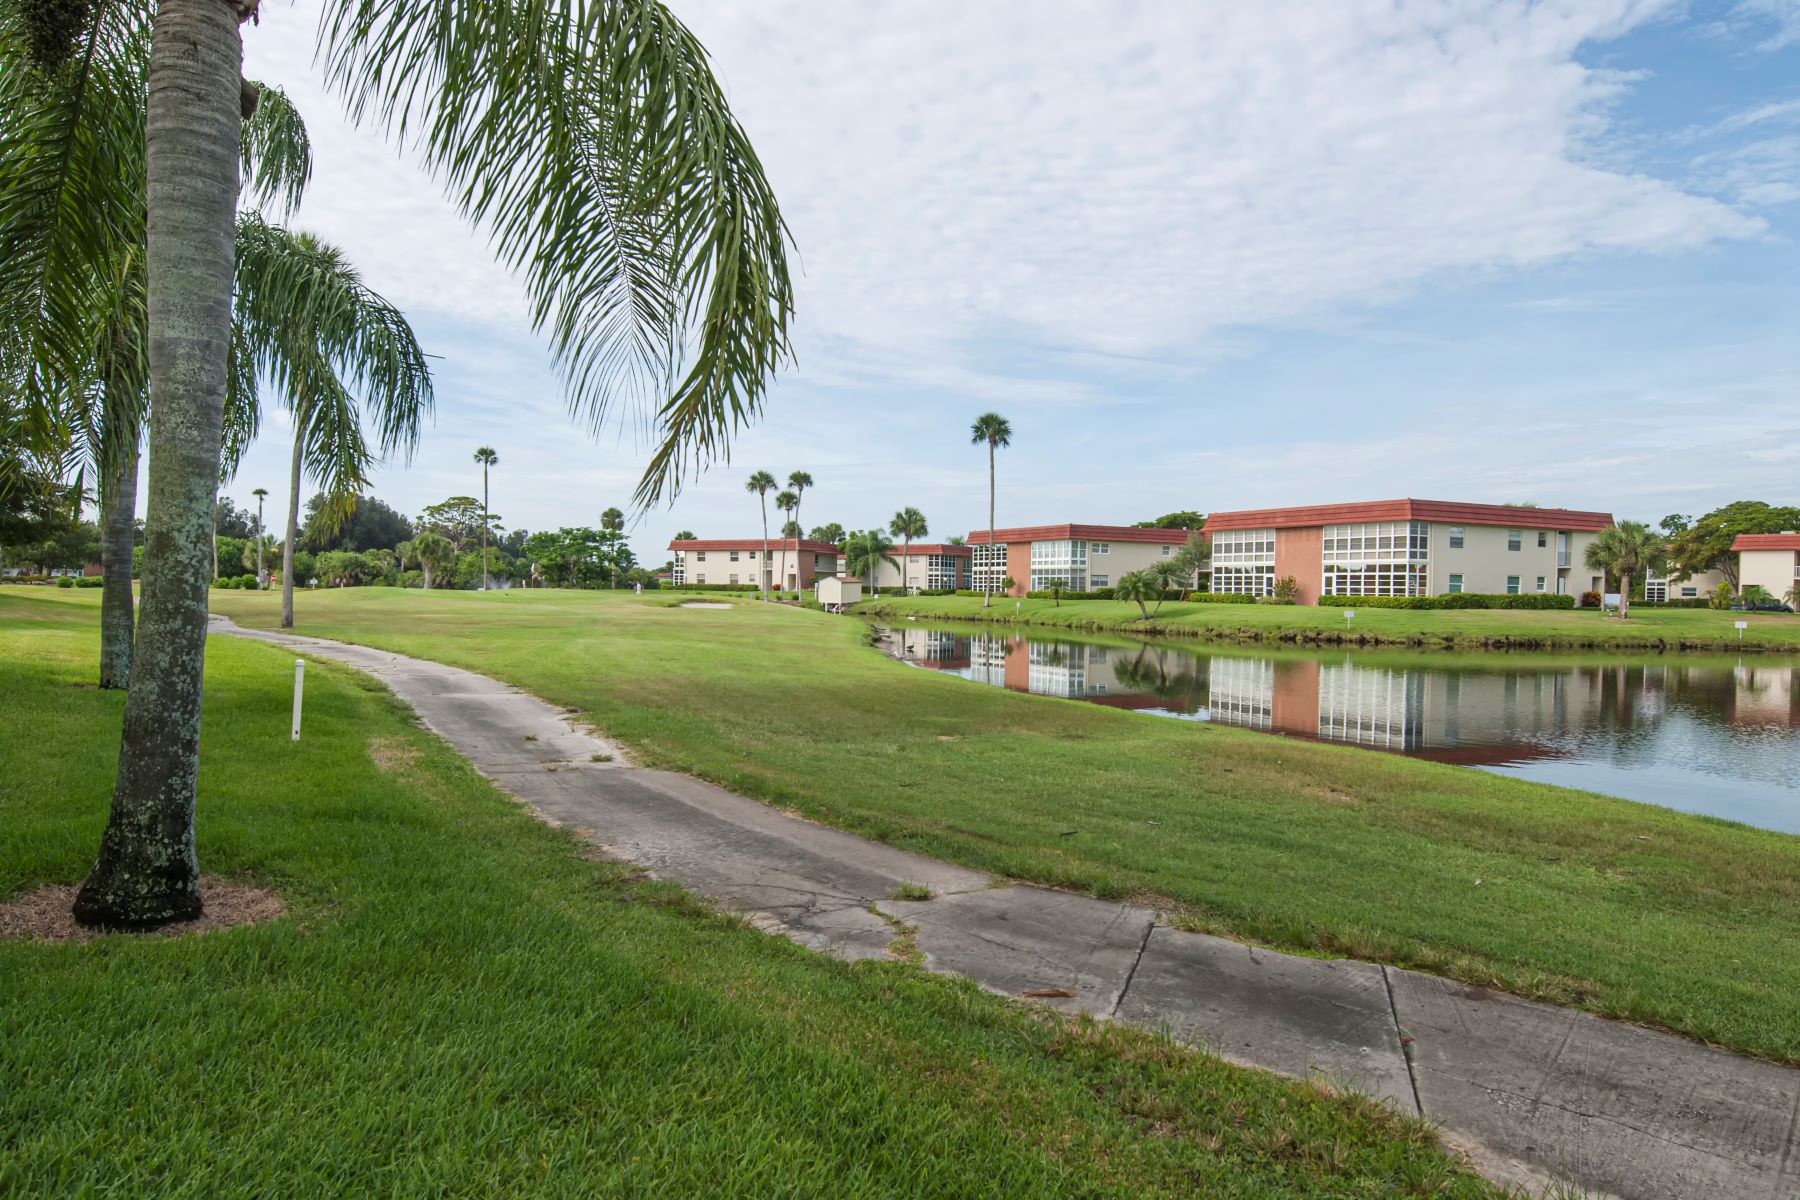 Property のために 売買 アット Cute One Bedroom Condo with Golf Course Views 76 Royal Oak Drive 204 Vero Beach, フロリダ 32962 アメリカ